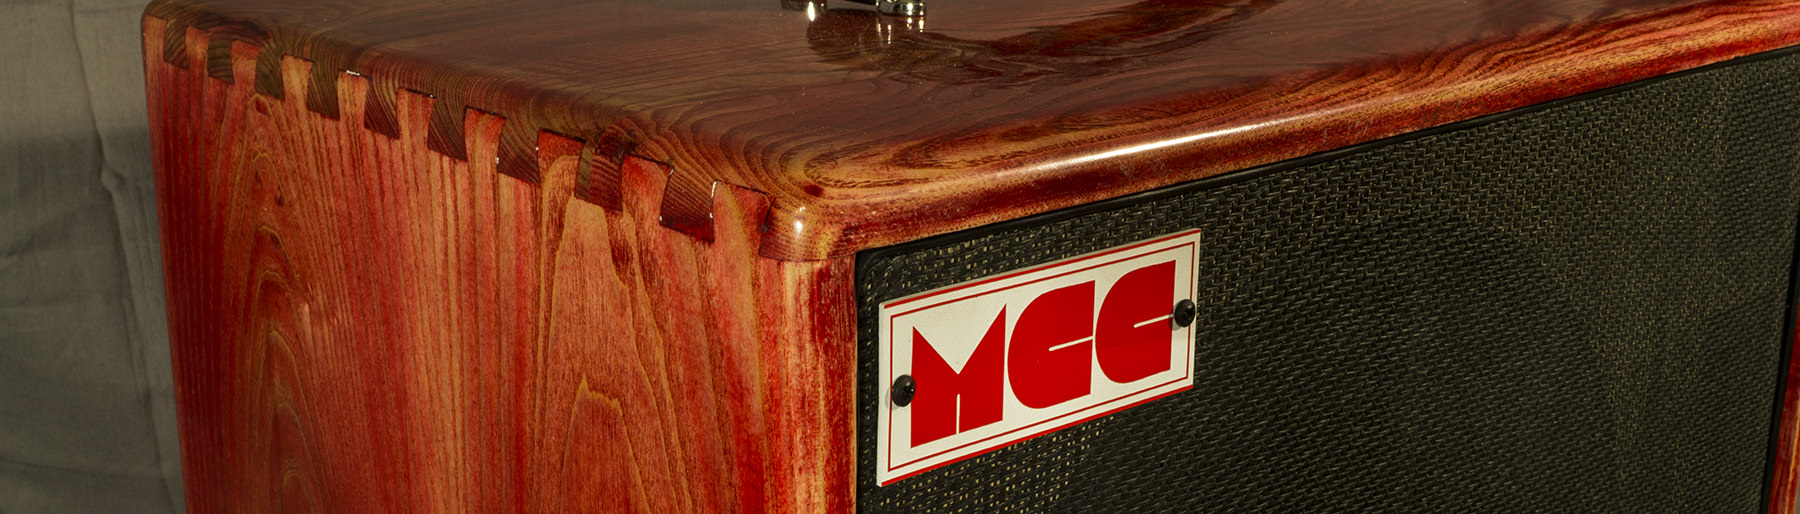 MCC Custom Thiele Box in Rot